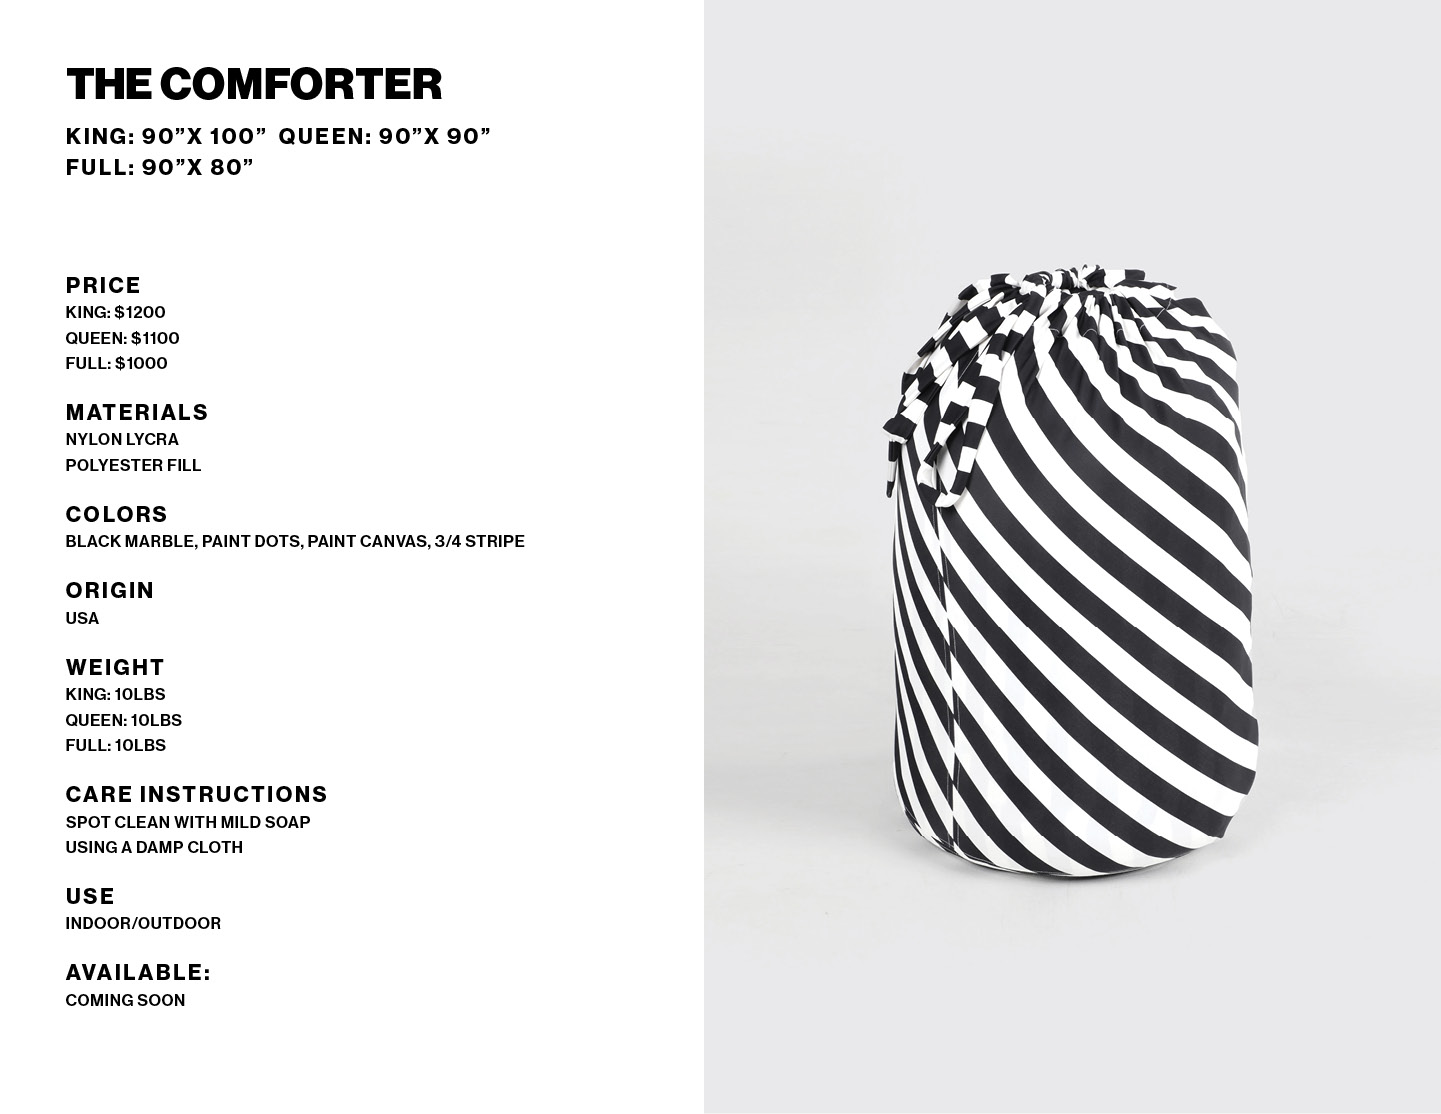 The Comforter product info